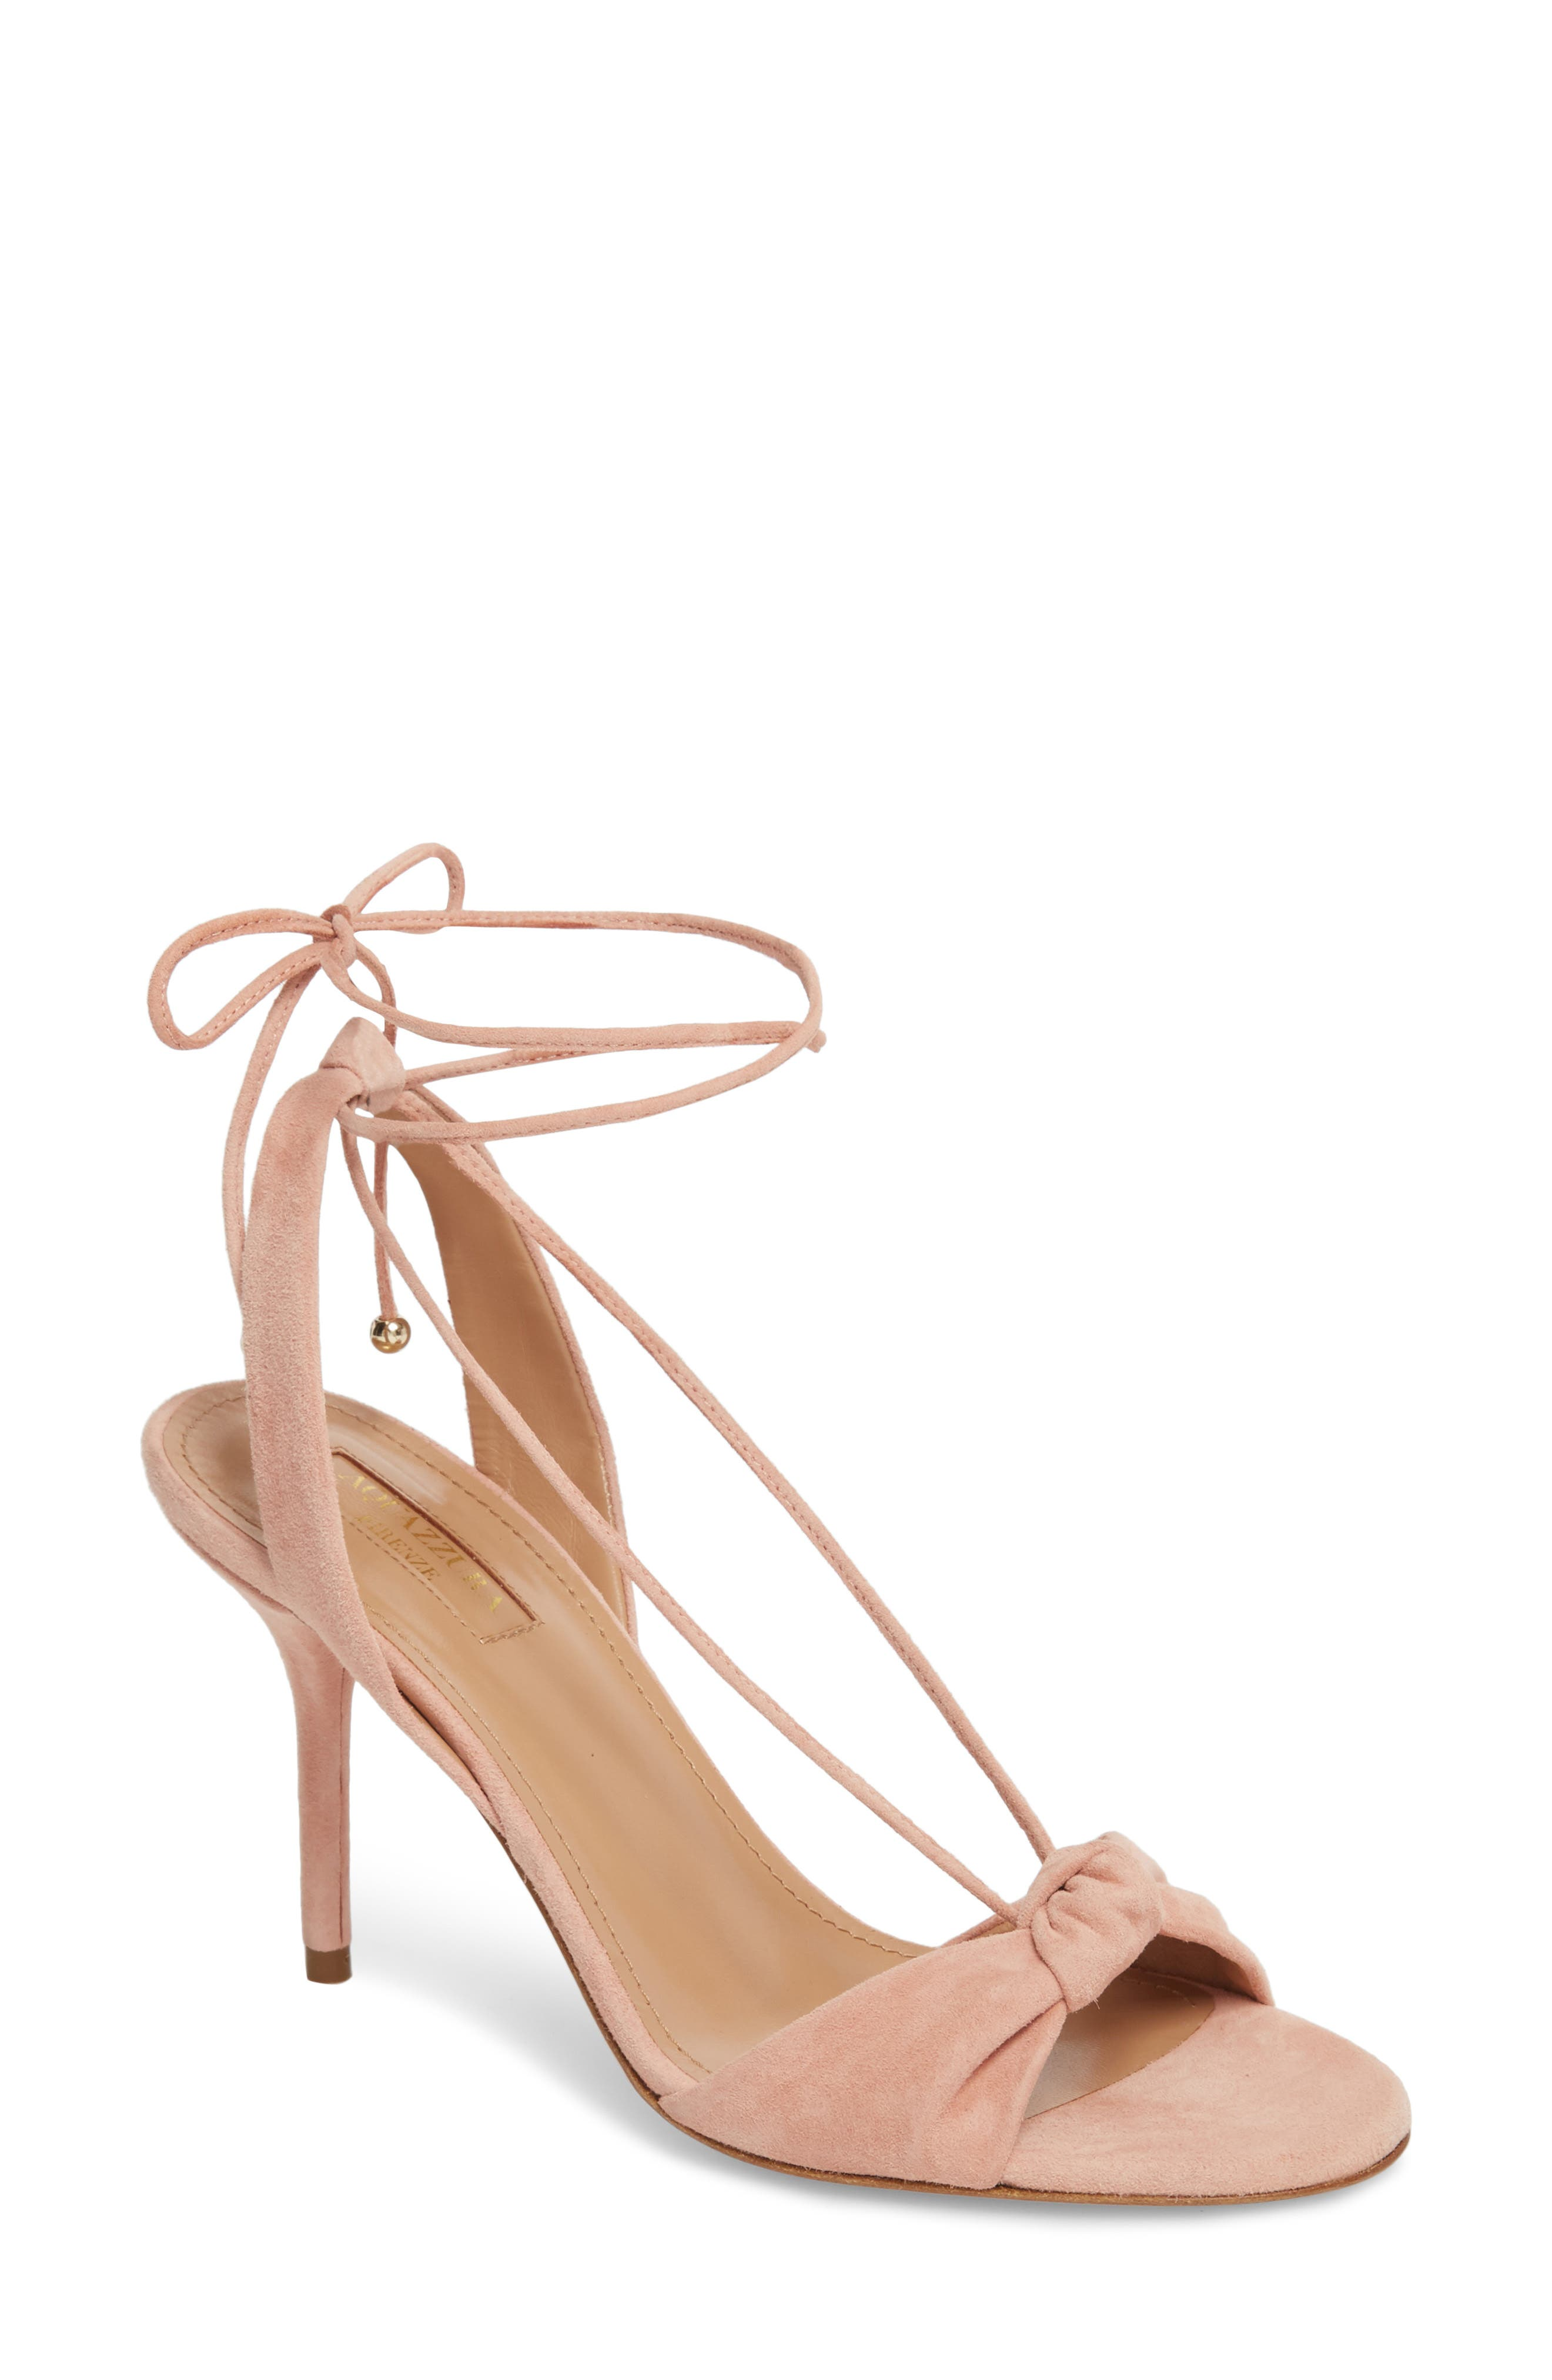 Virginie Lace-Up Sandal,                         Main,                         color, French Rose